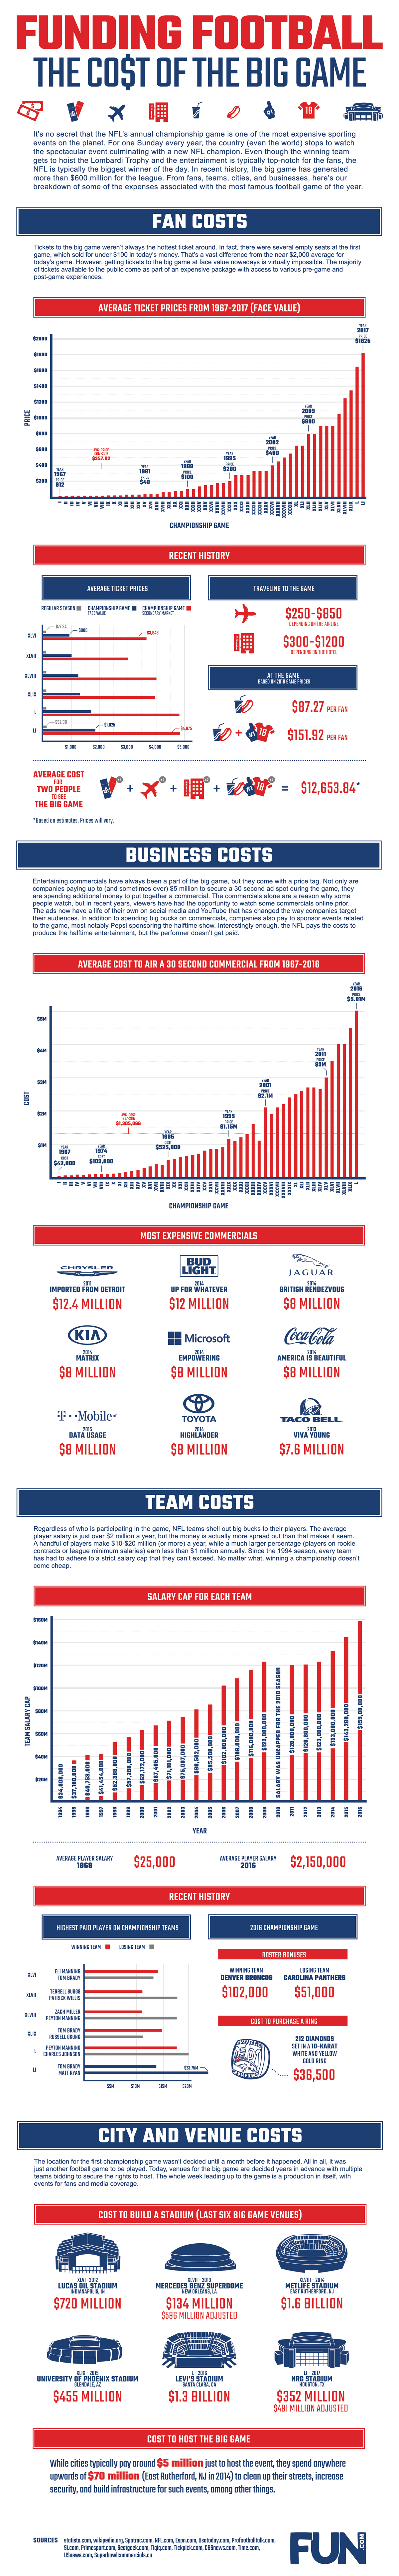 Funding Football Infographic